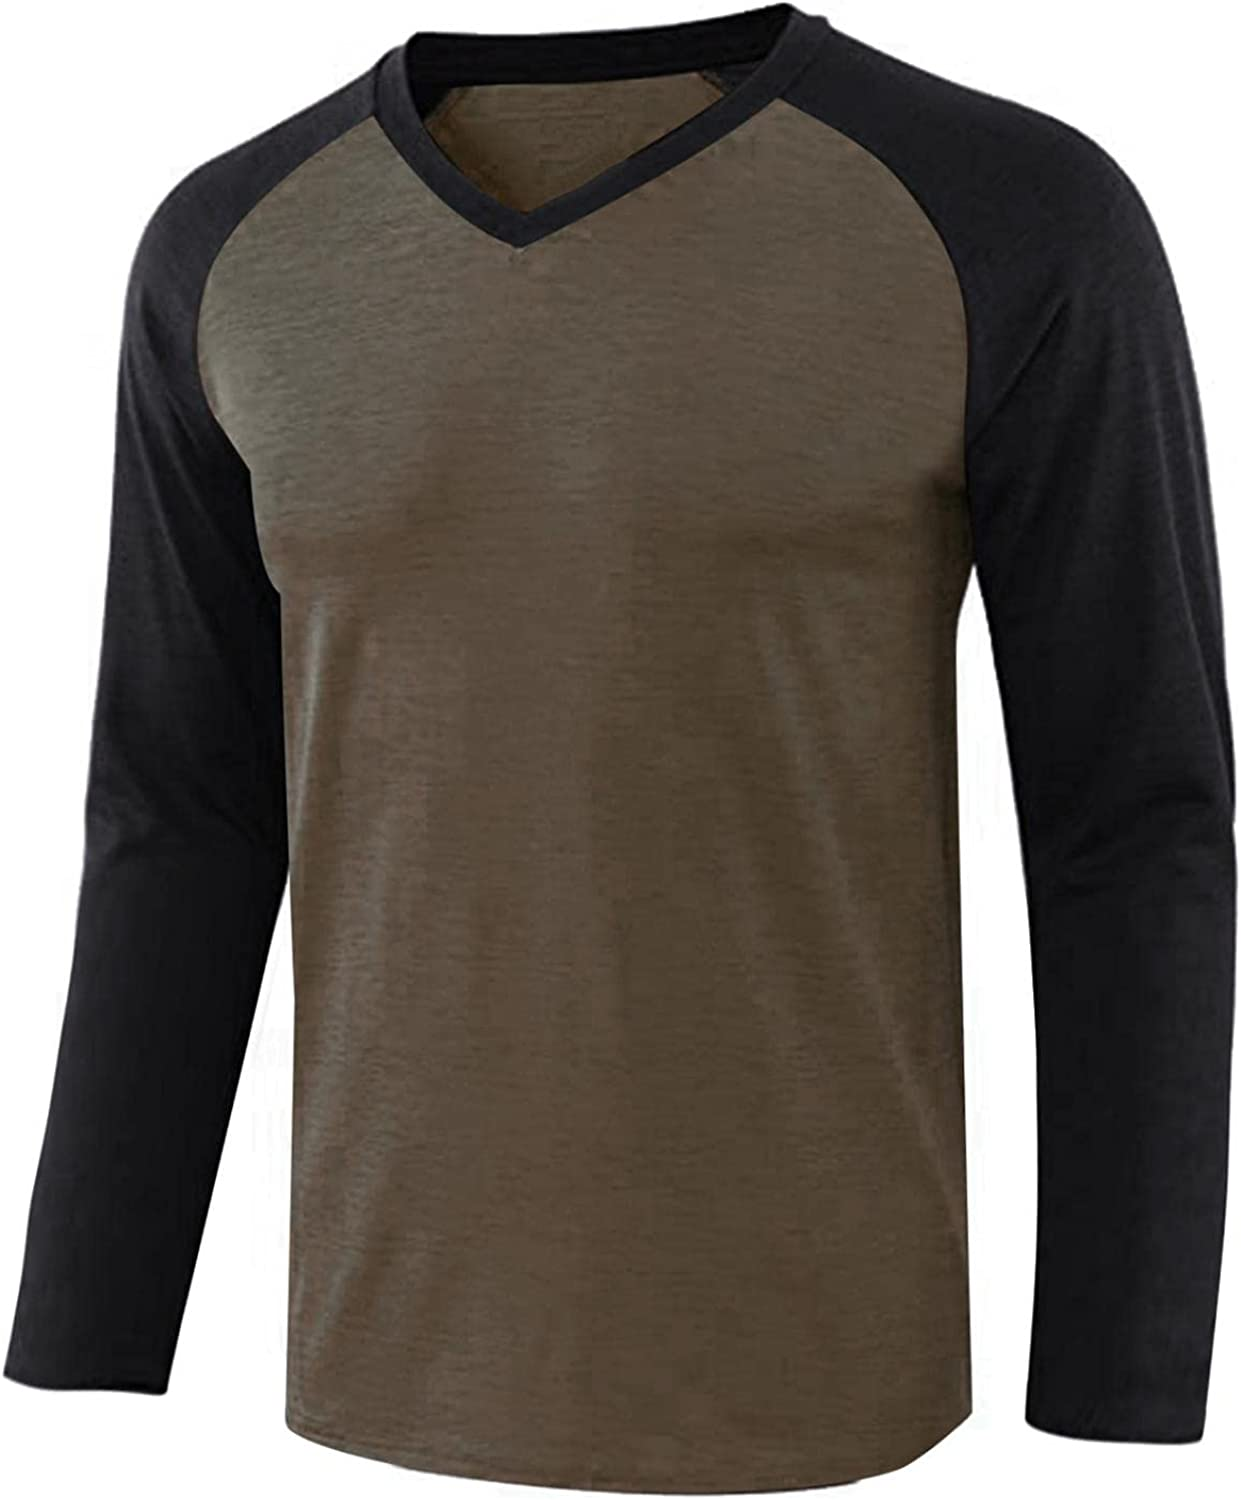 LEIYAN Mens Fashion Athletic T-Shirt Long Sleeve Beefy Casual V-Neck Slim Fit Gym Workout Tops Activewear